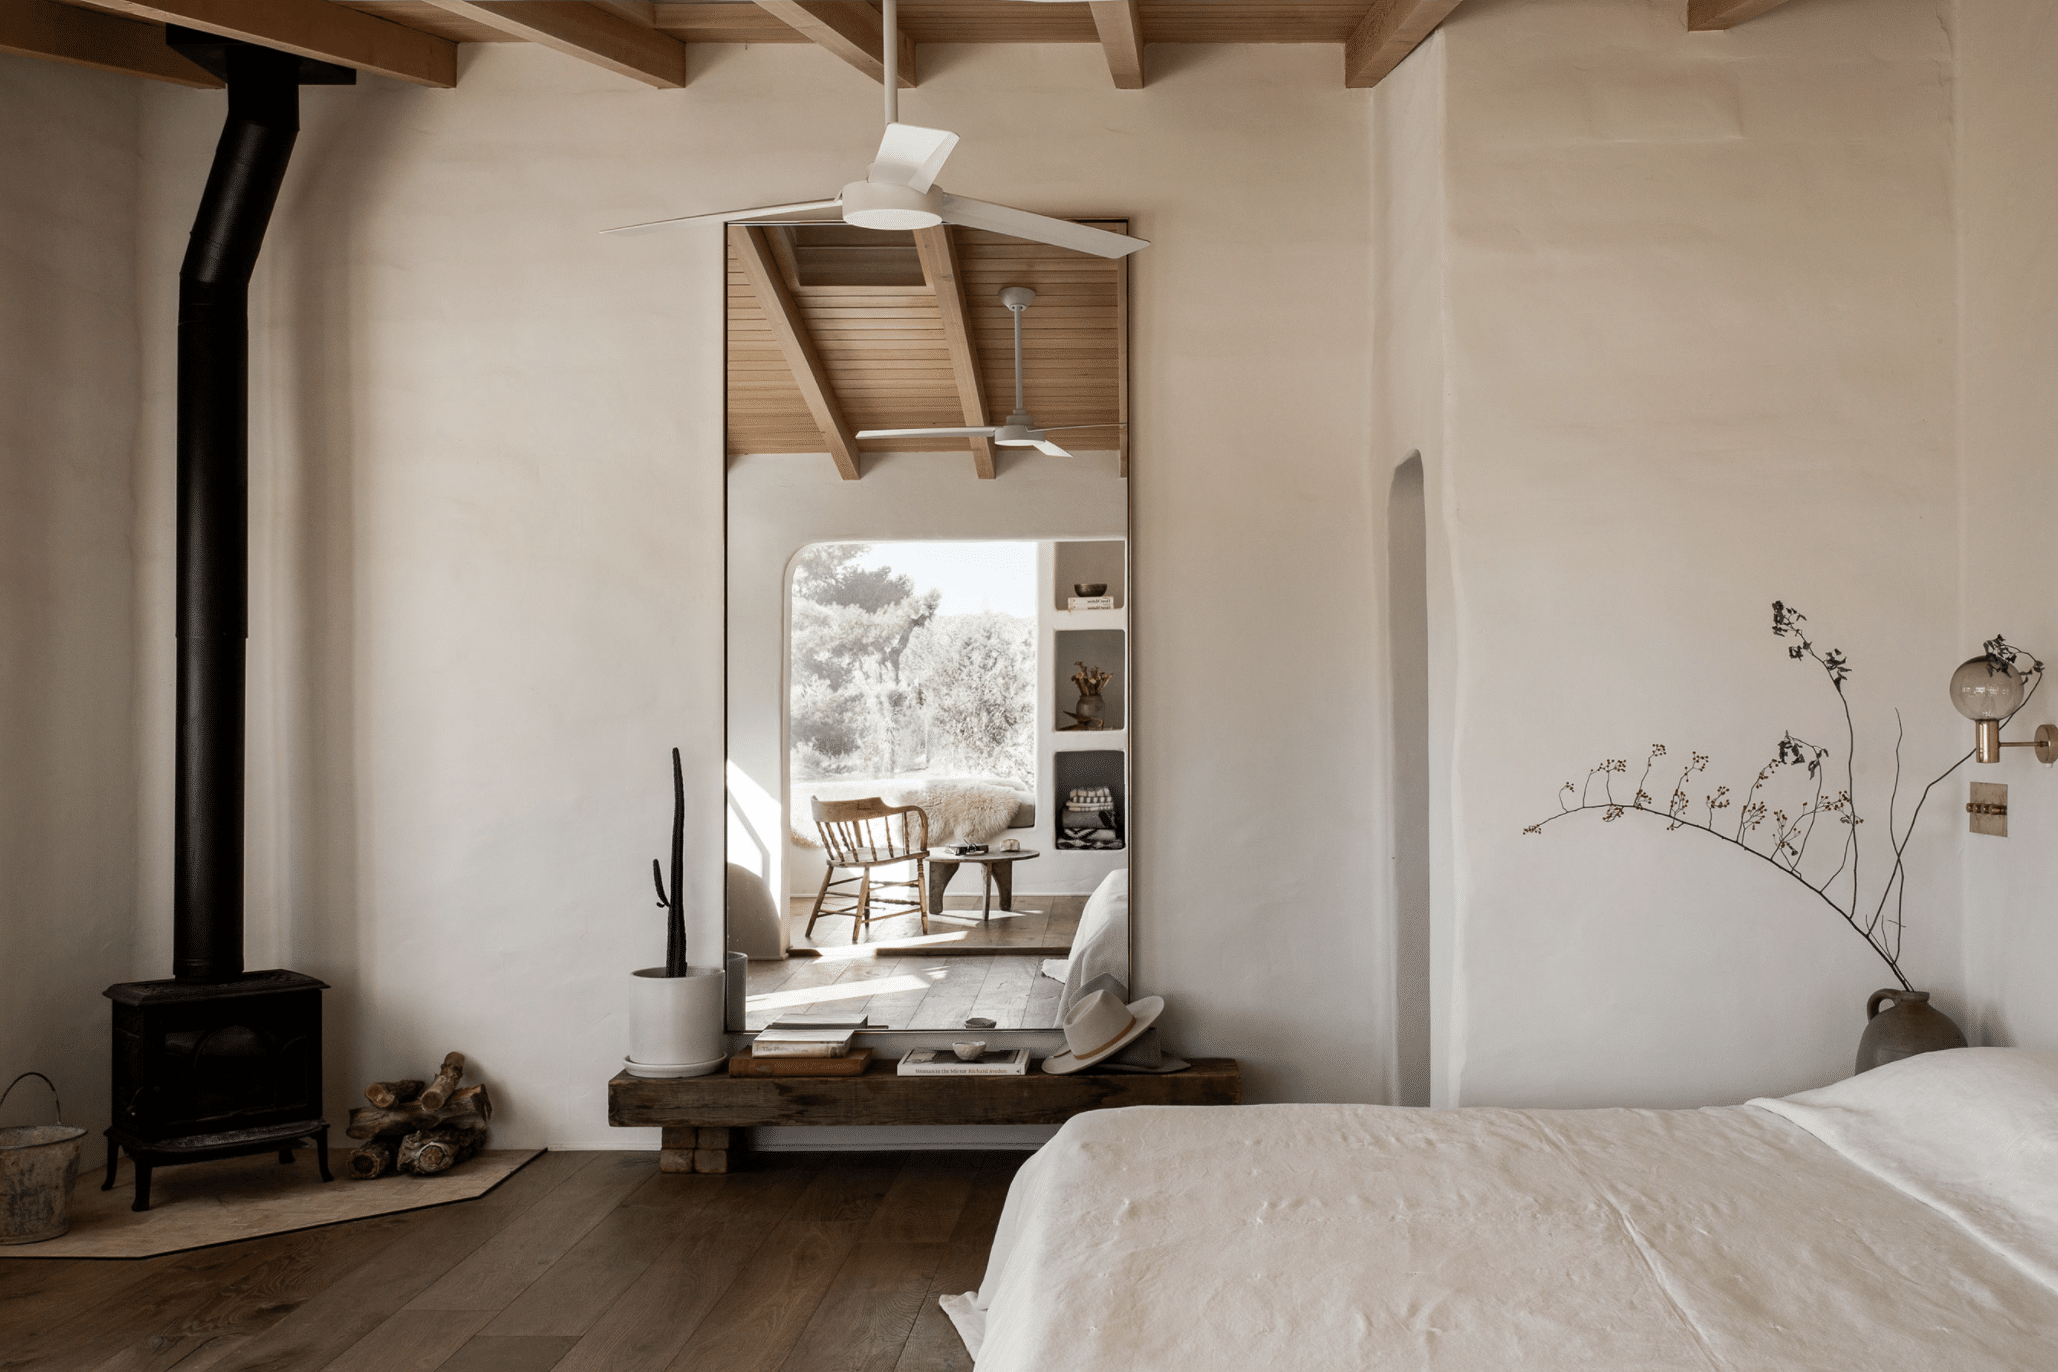 The Desert Adobe Featuring Softness And Simplicity!